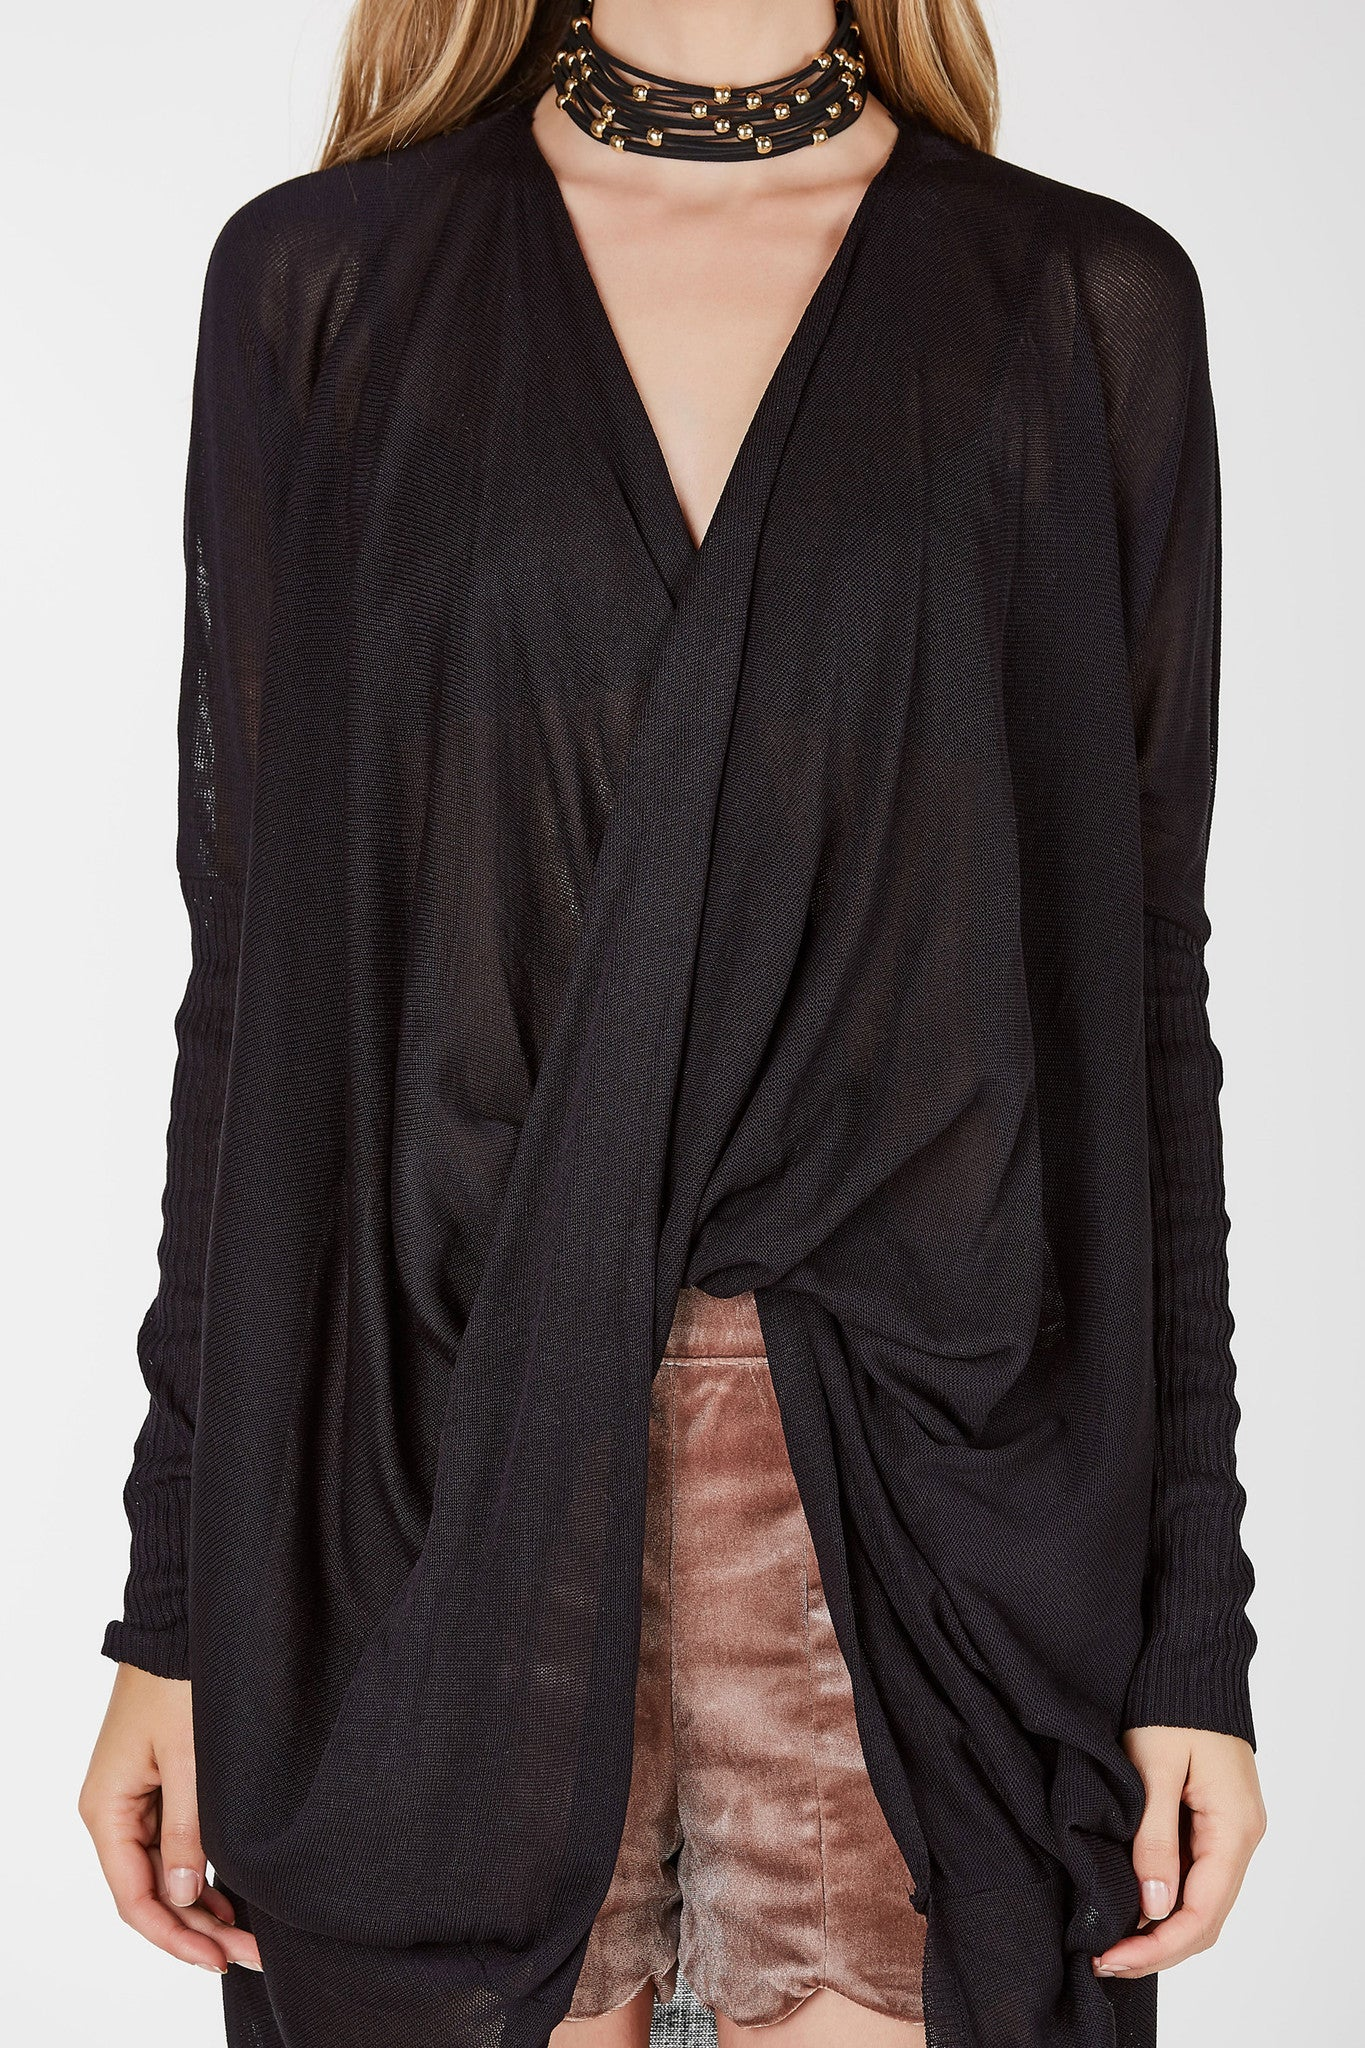 An amazing cardigan featuring a low cut neckline leading to a front twist detail. This cardigan is slightly sheer with a longer back. Long fitted sleeves even out the loose relaxed fit making this cardigan edgy yet adorable. Complete your look effortlessly but throwing this cardigan over your everyday outfits.